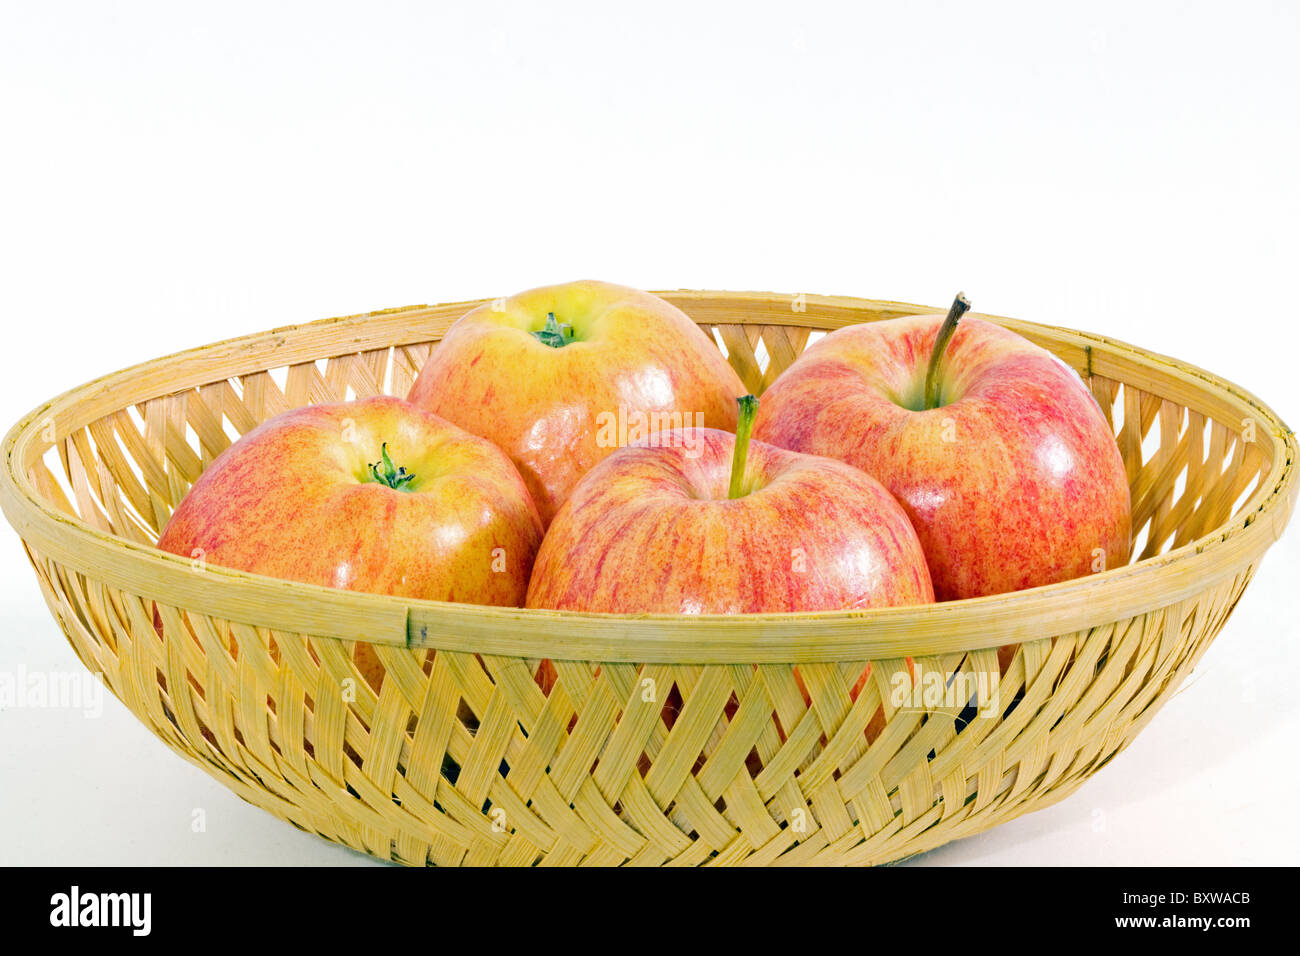 basket with four apples stock photo 33748411 alamy